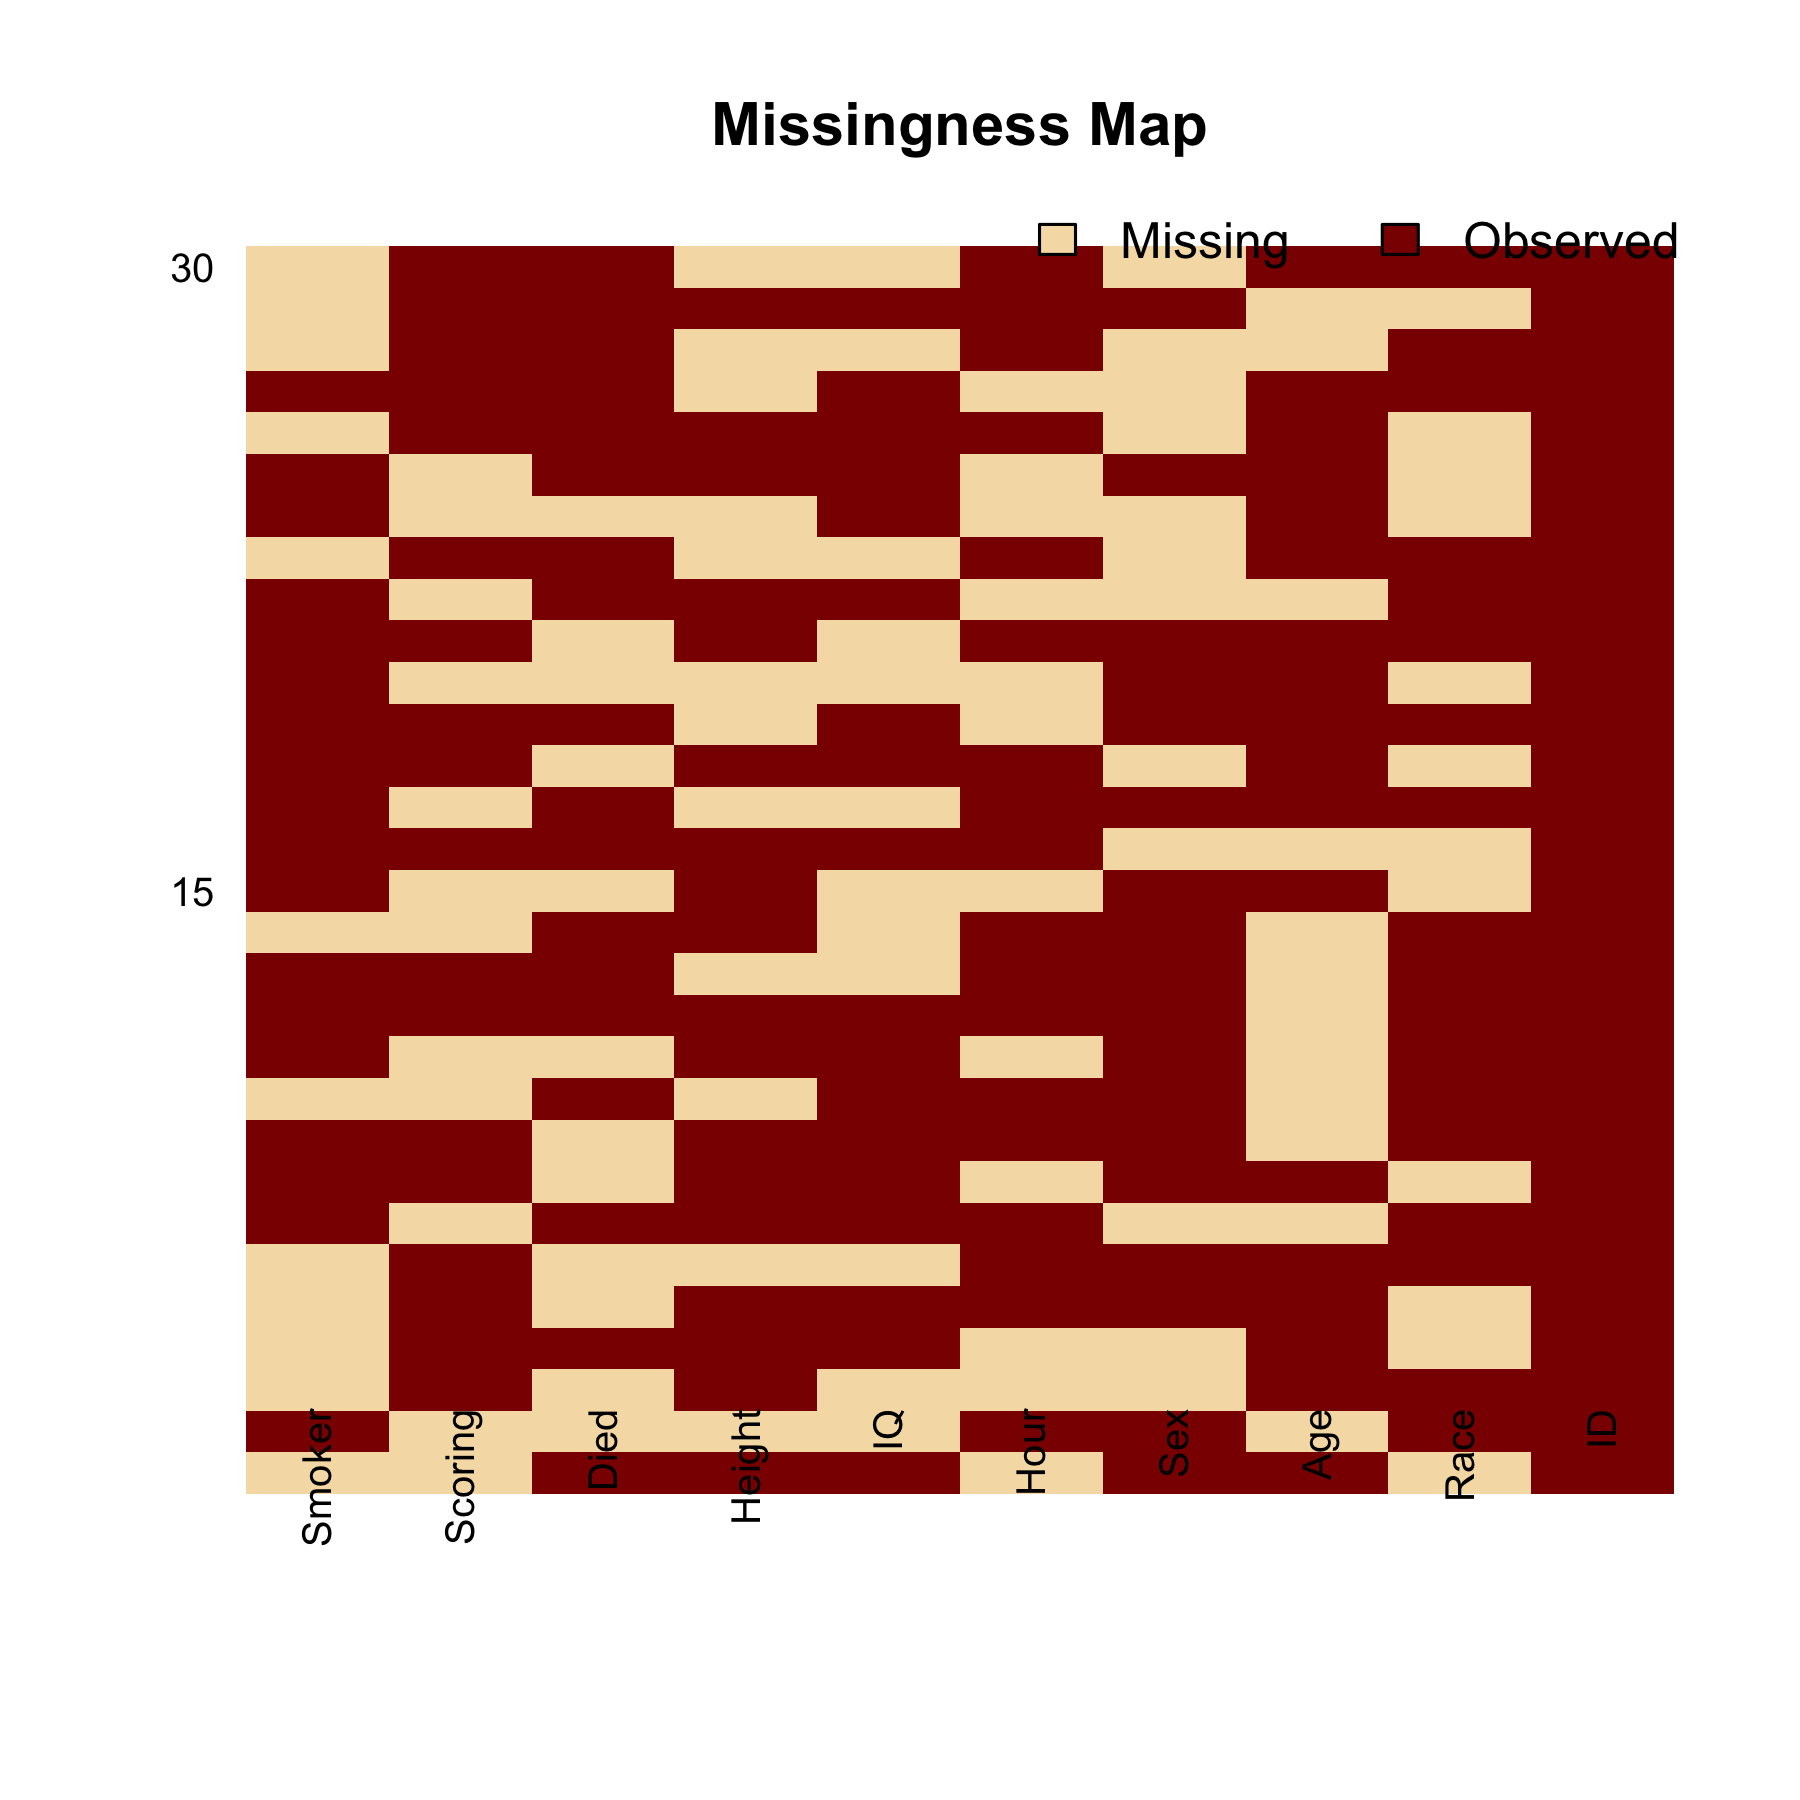 ggplot your missing data